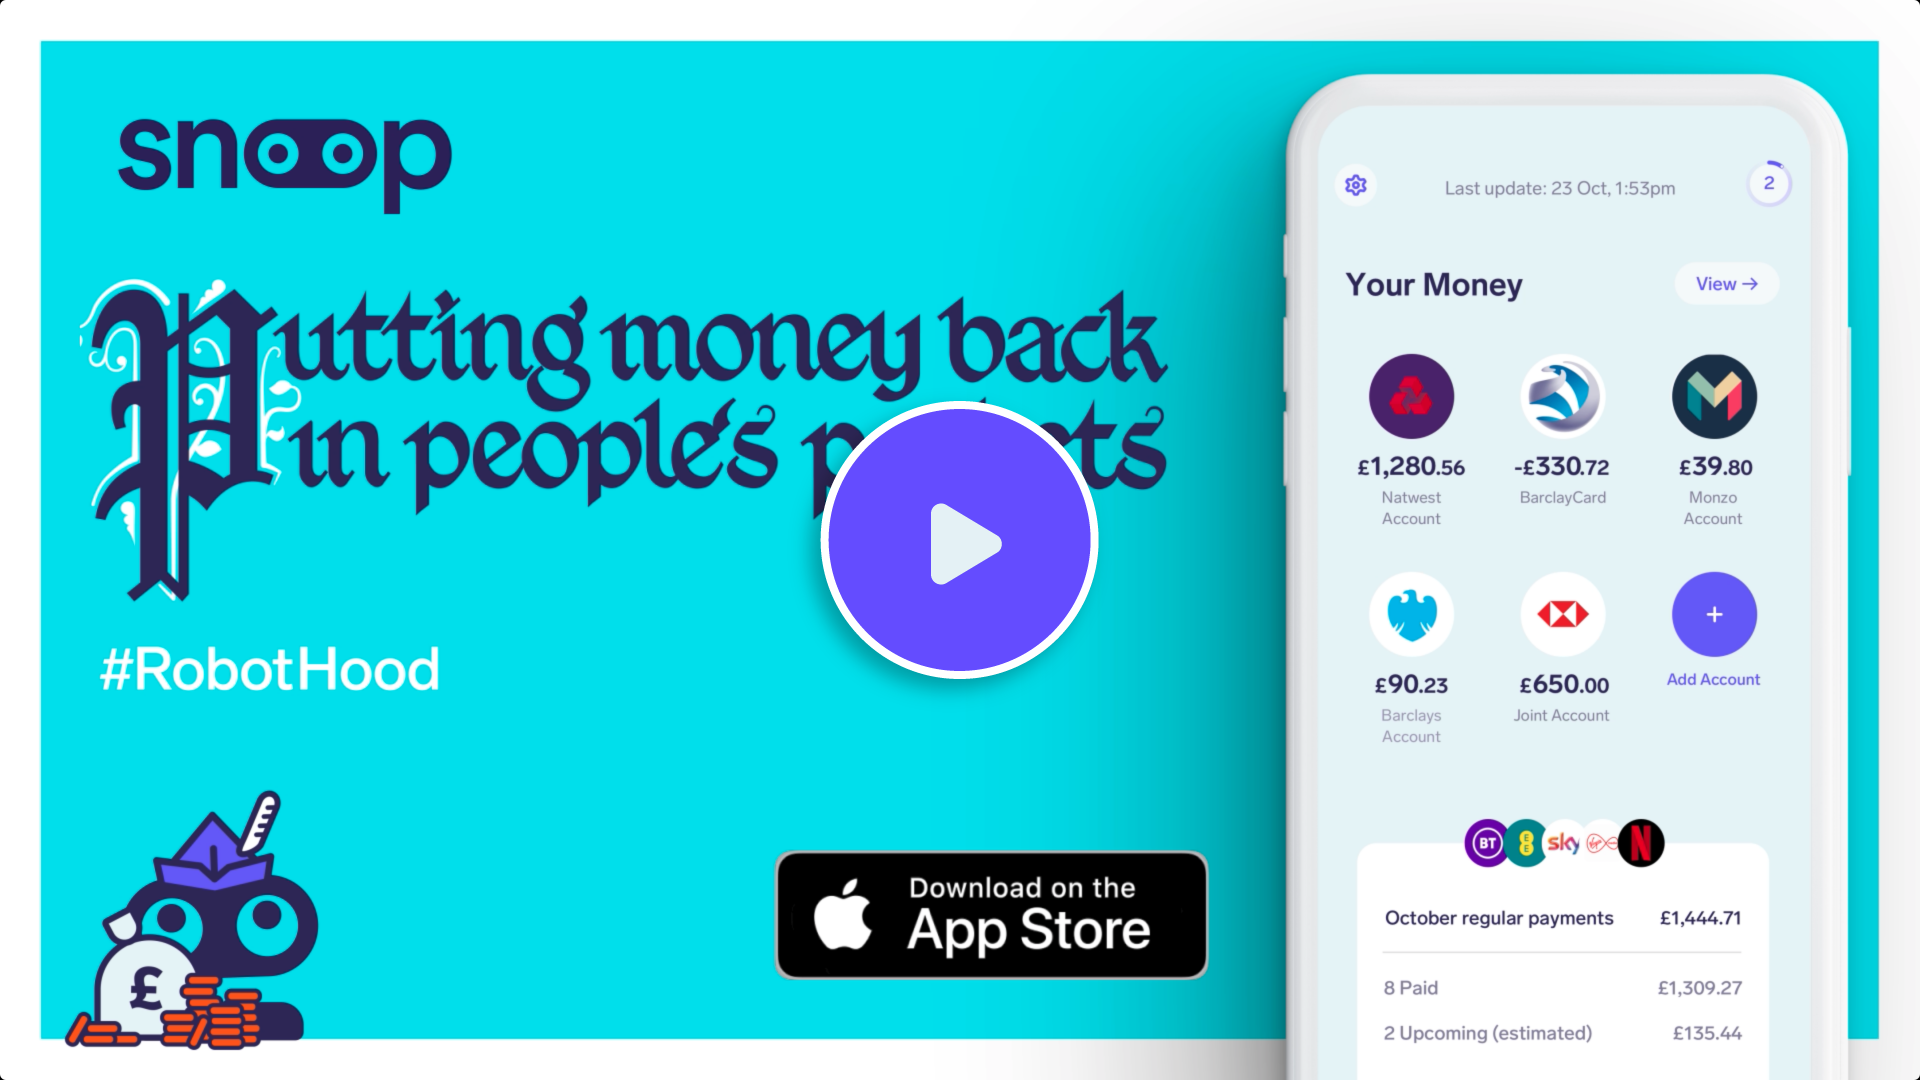 Still image of the Putting money back in peoples pockets advert